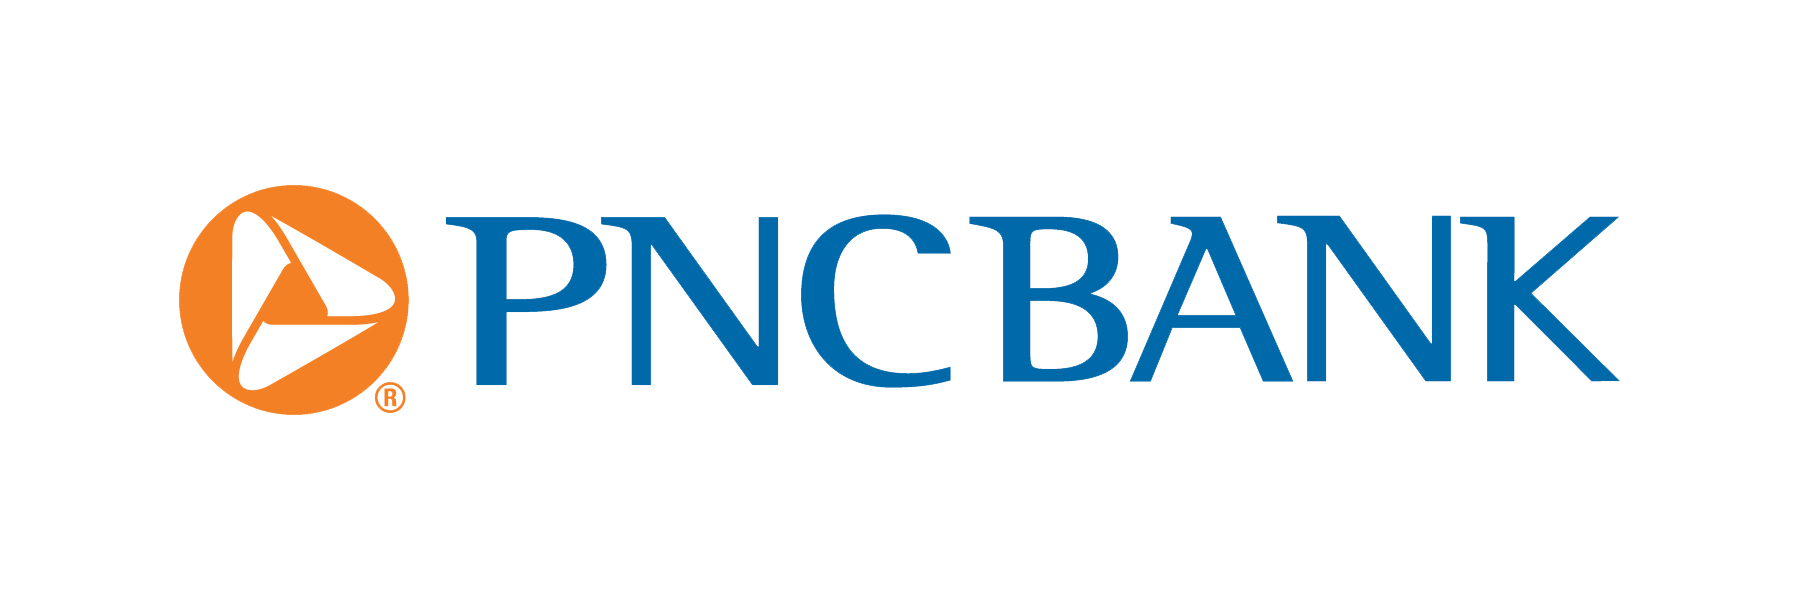 PNC_BANK_4C_No_Tag.png